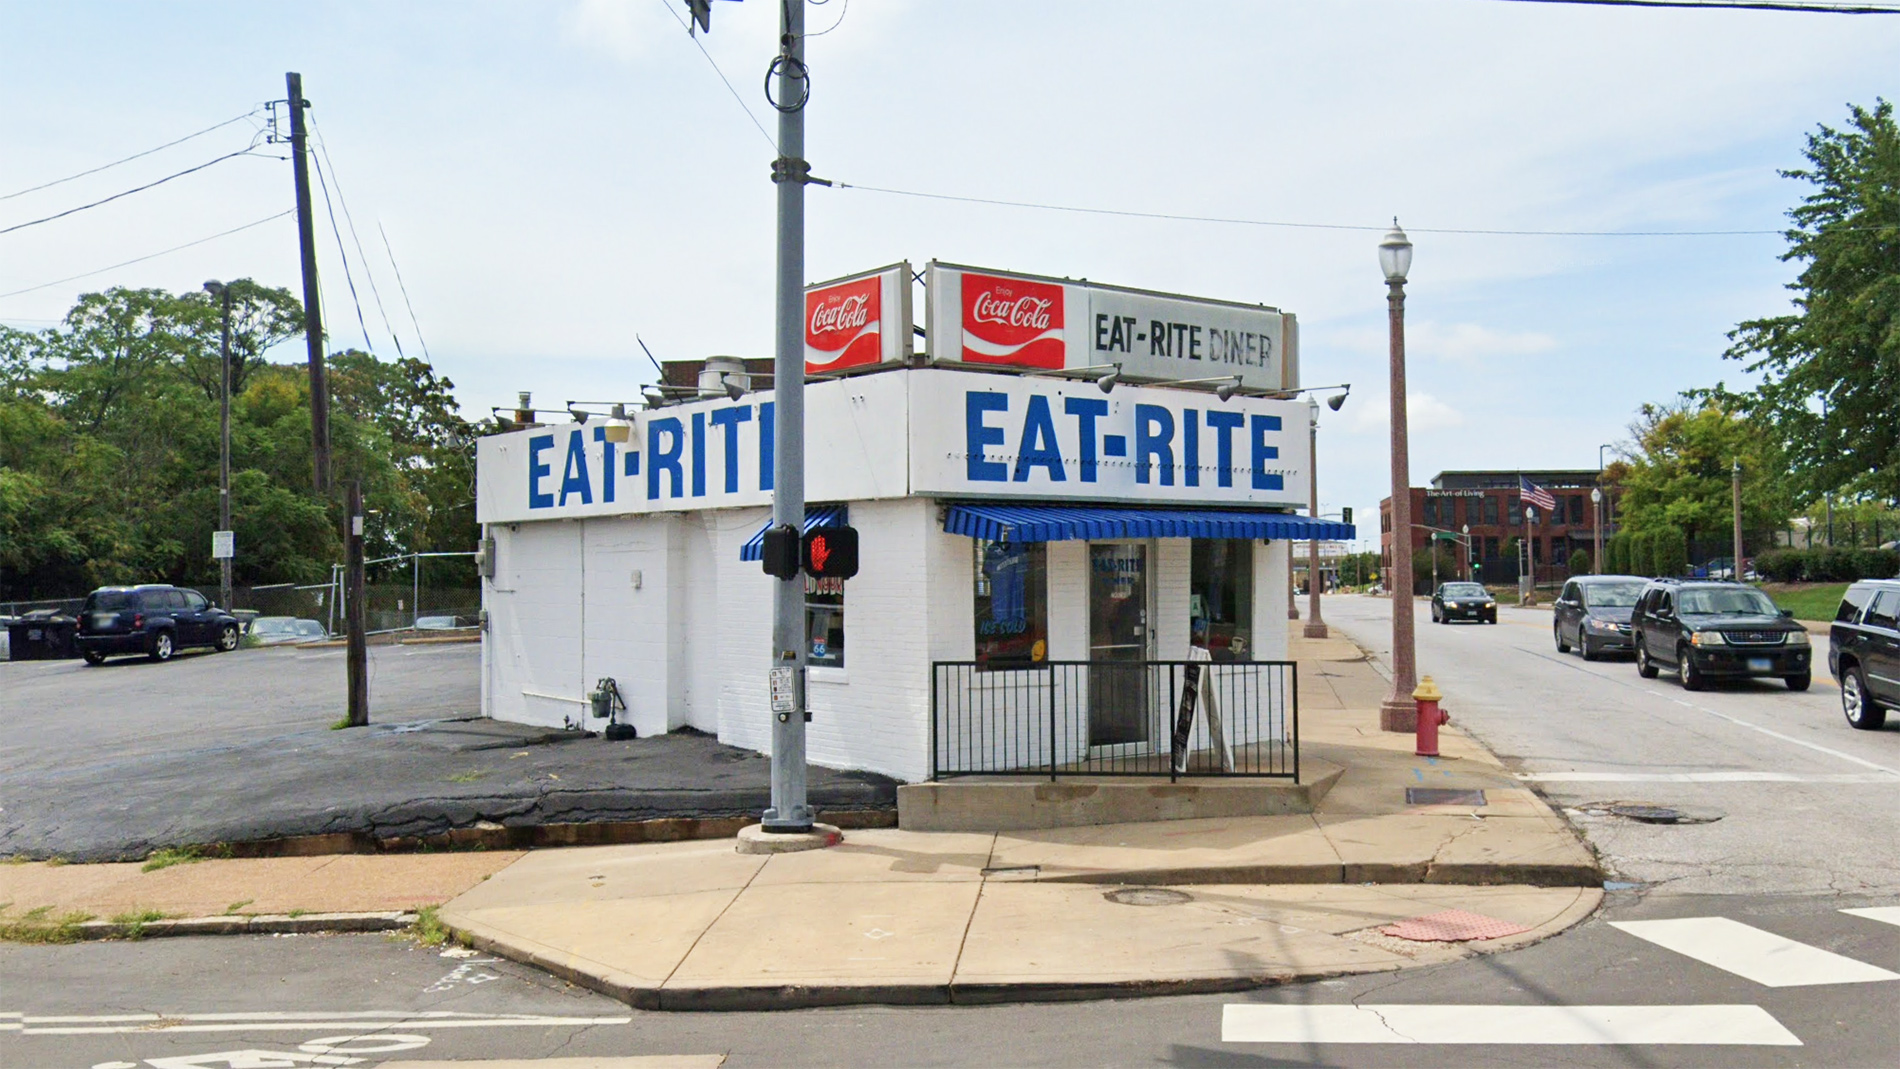 eat-rite diner in downtown st. louis